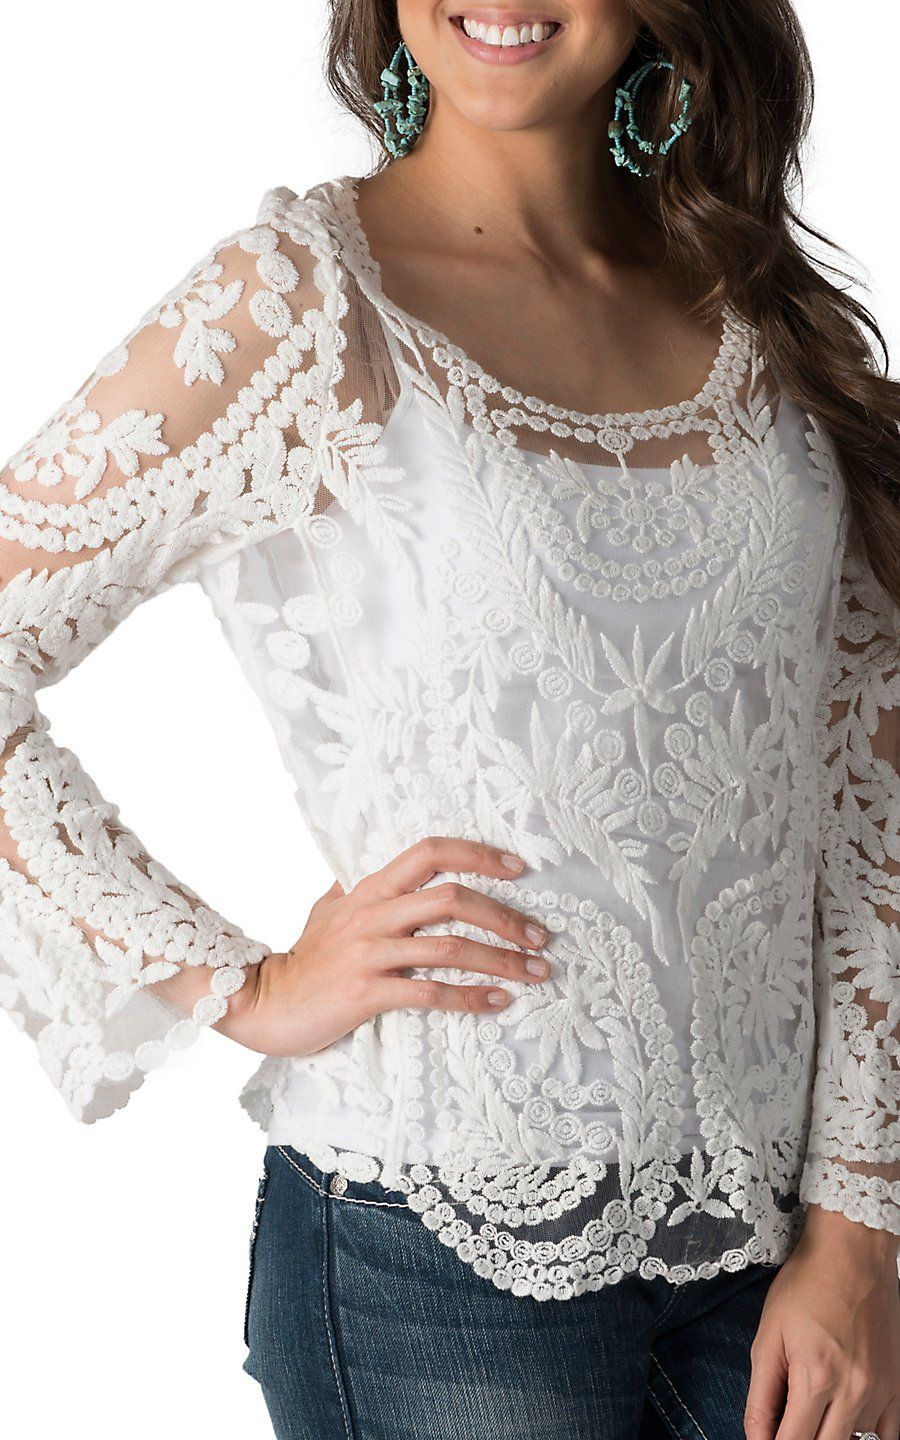 f5c1cc36528 Karlie Women s White Lace Long Sleeve Top